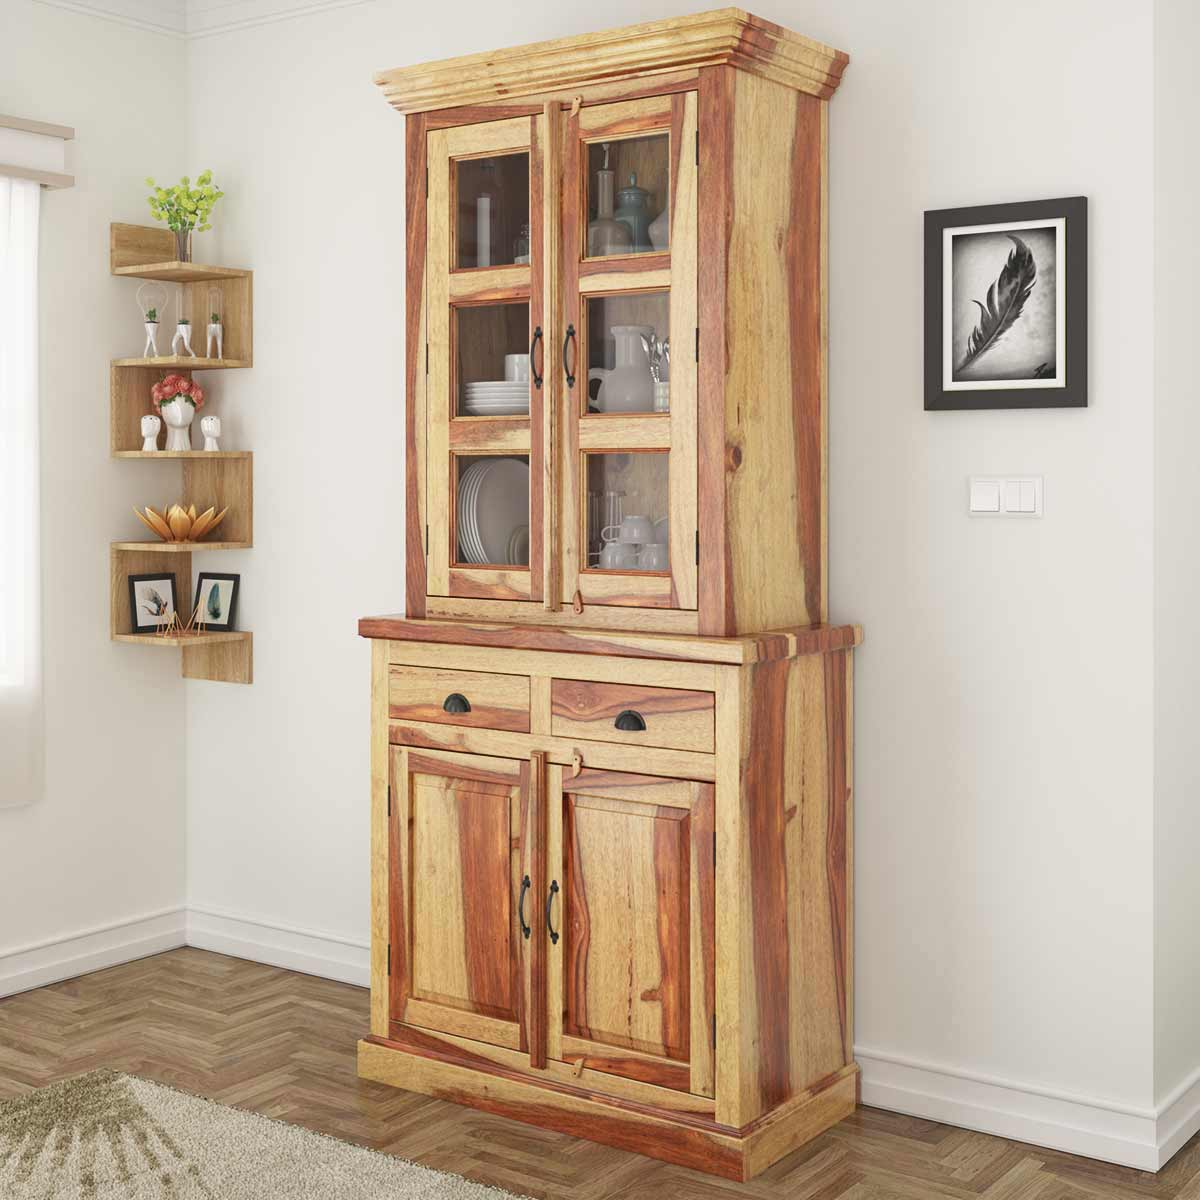 dining room hutches | Ostrander Rustic Solid Rosewood Tall Dining Room Hutch